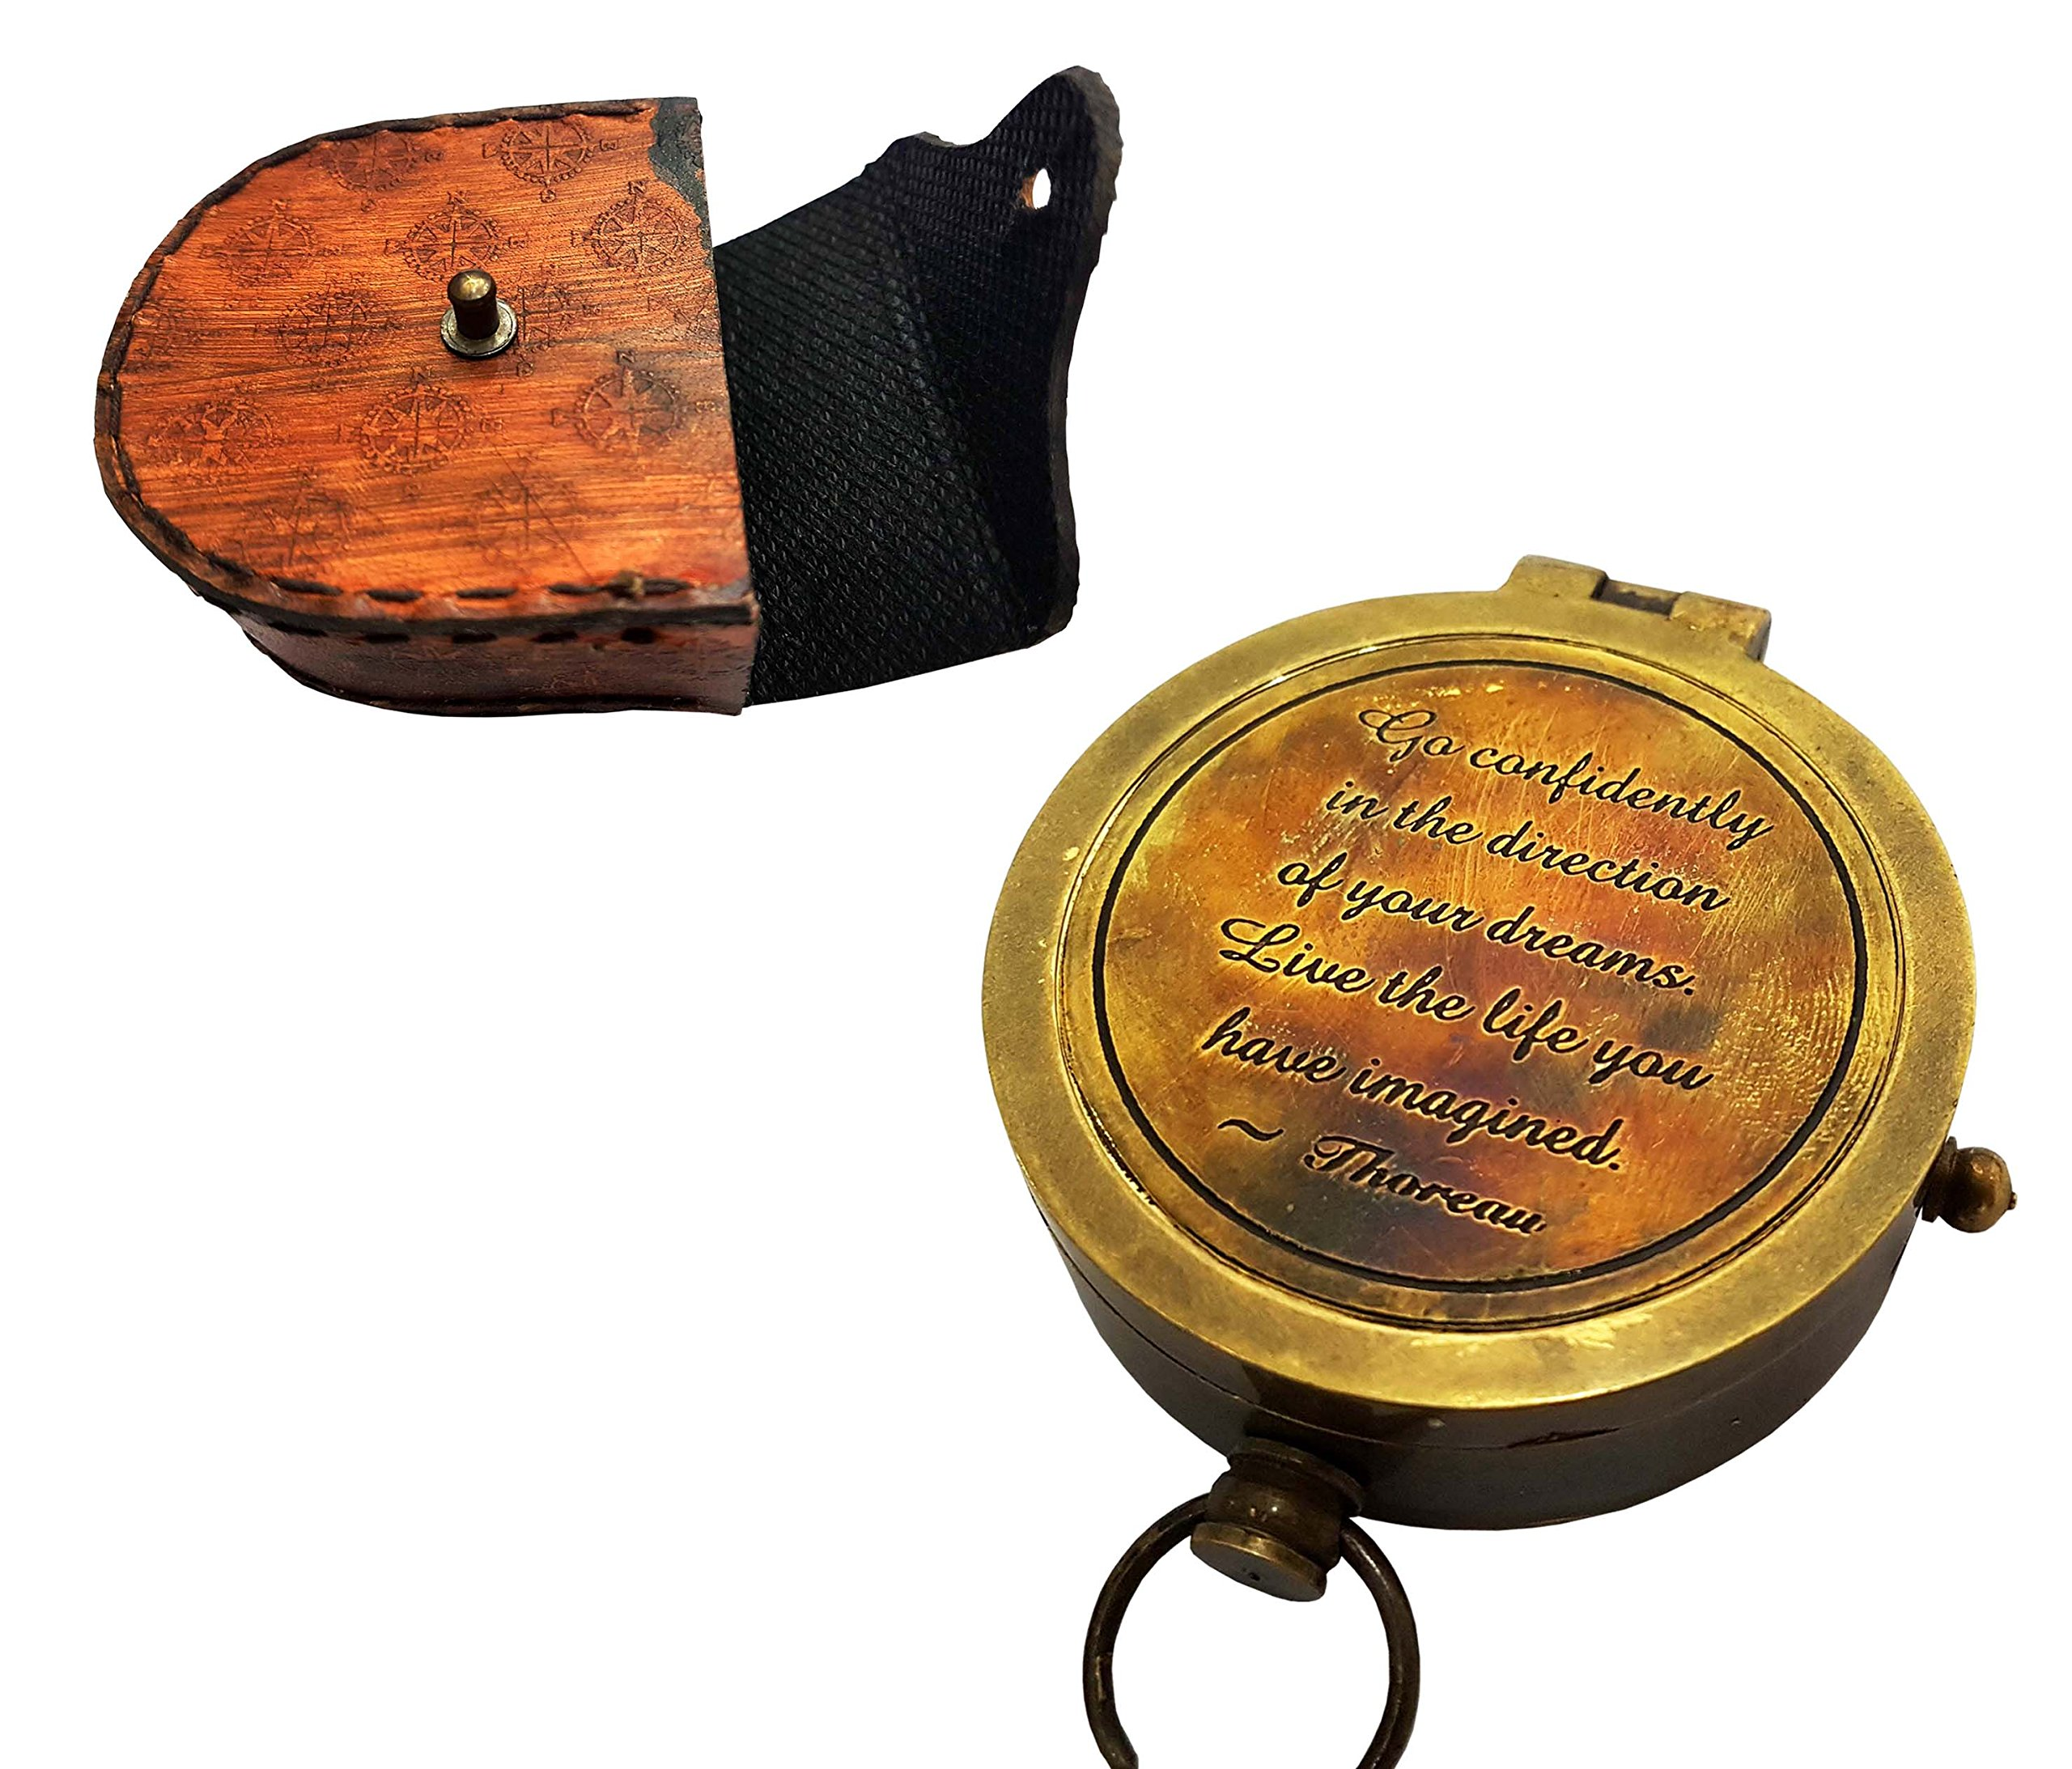 Brass Nautical Thoreau's Go Confidently Engraved Solid Brass Compass with leather Case